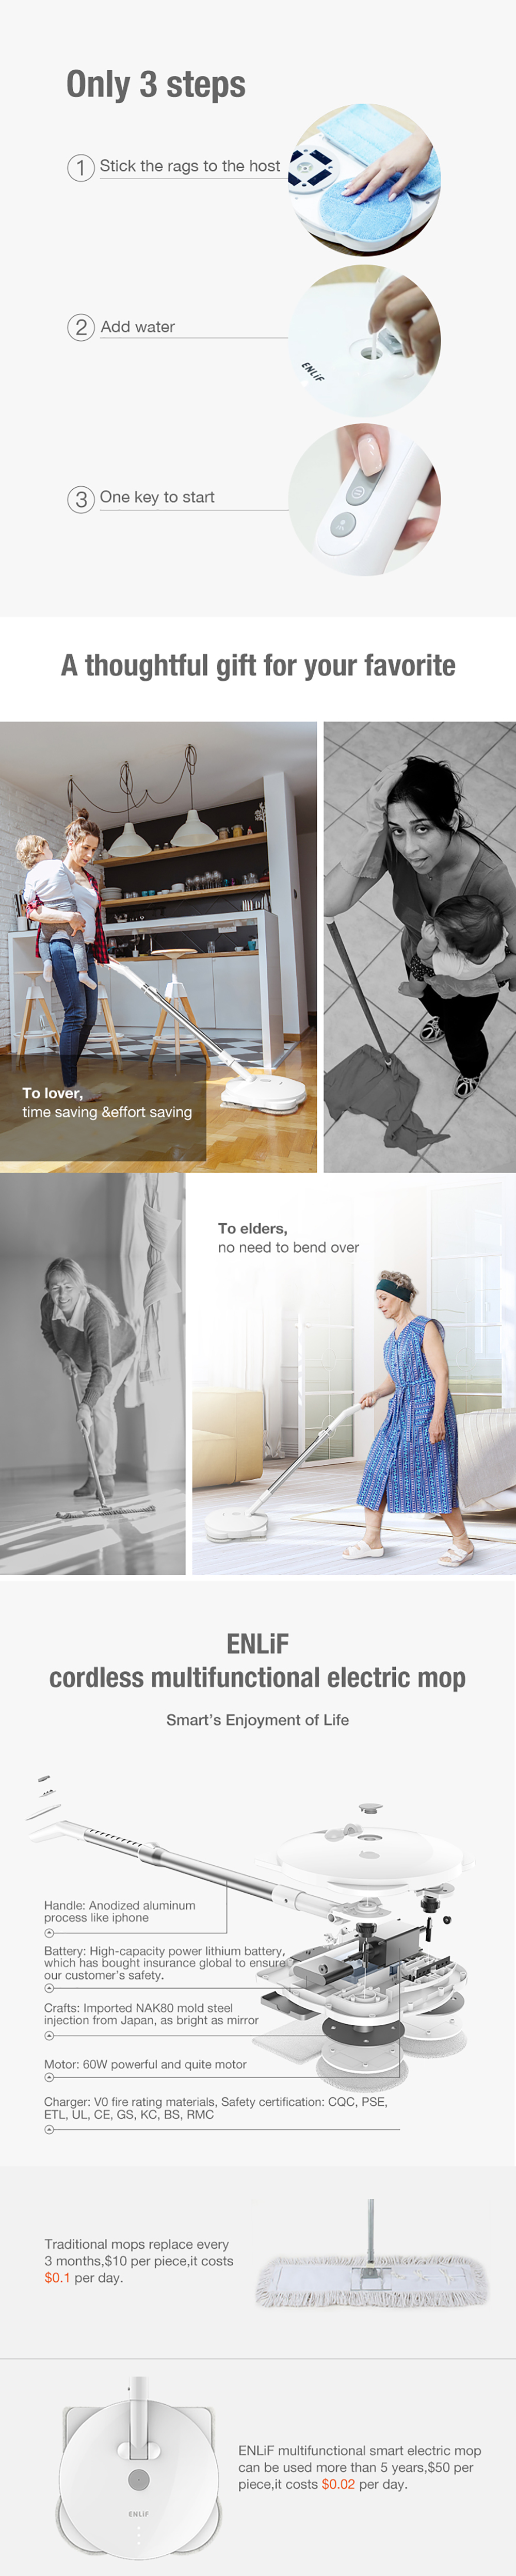 ENLiF F1 Electric Wireless Spin Spray Pet Mop Vacuum Cleaner Cordless Rechargeable Lightweight Cleaner Electronic Floor Sweeper and Mop